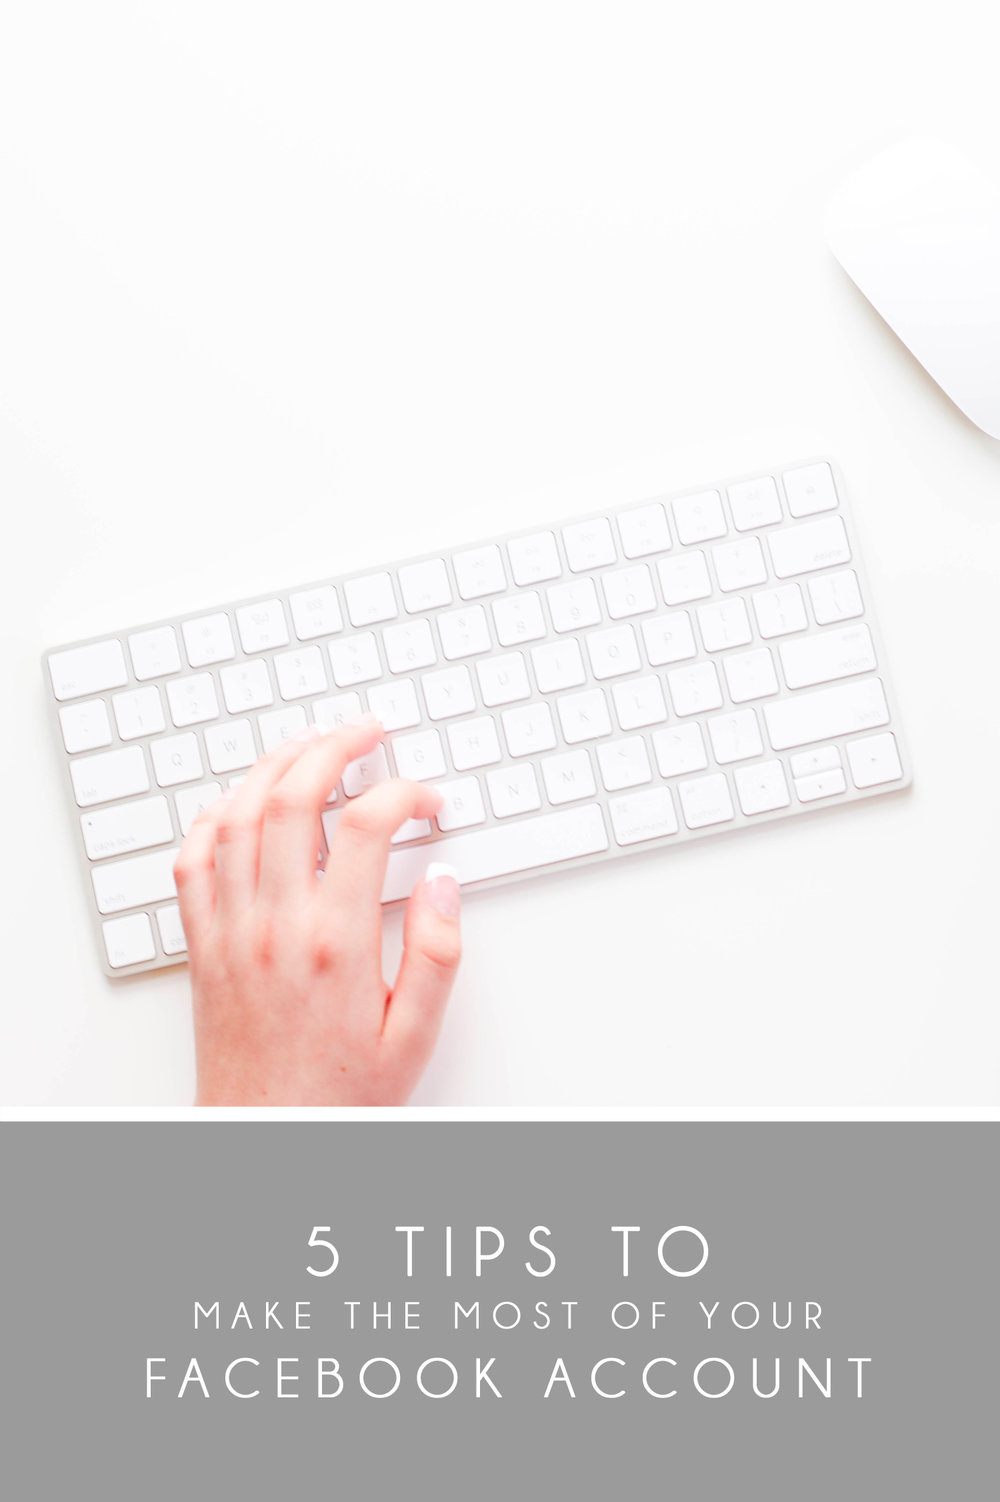 How to Make the Most of Your Facebook Account